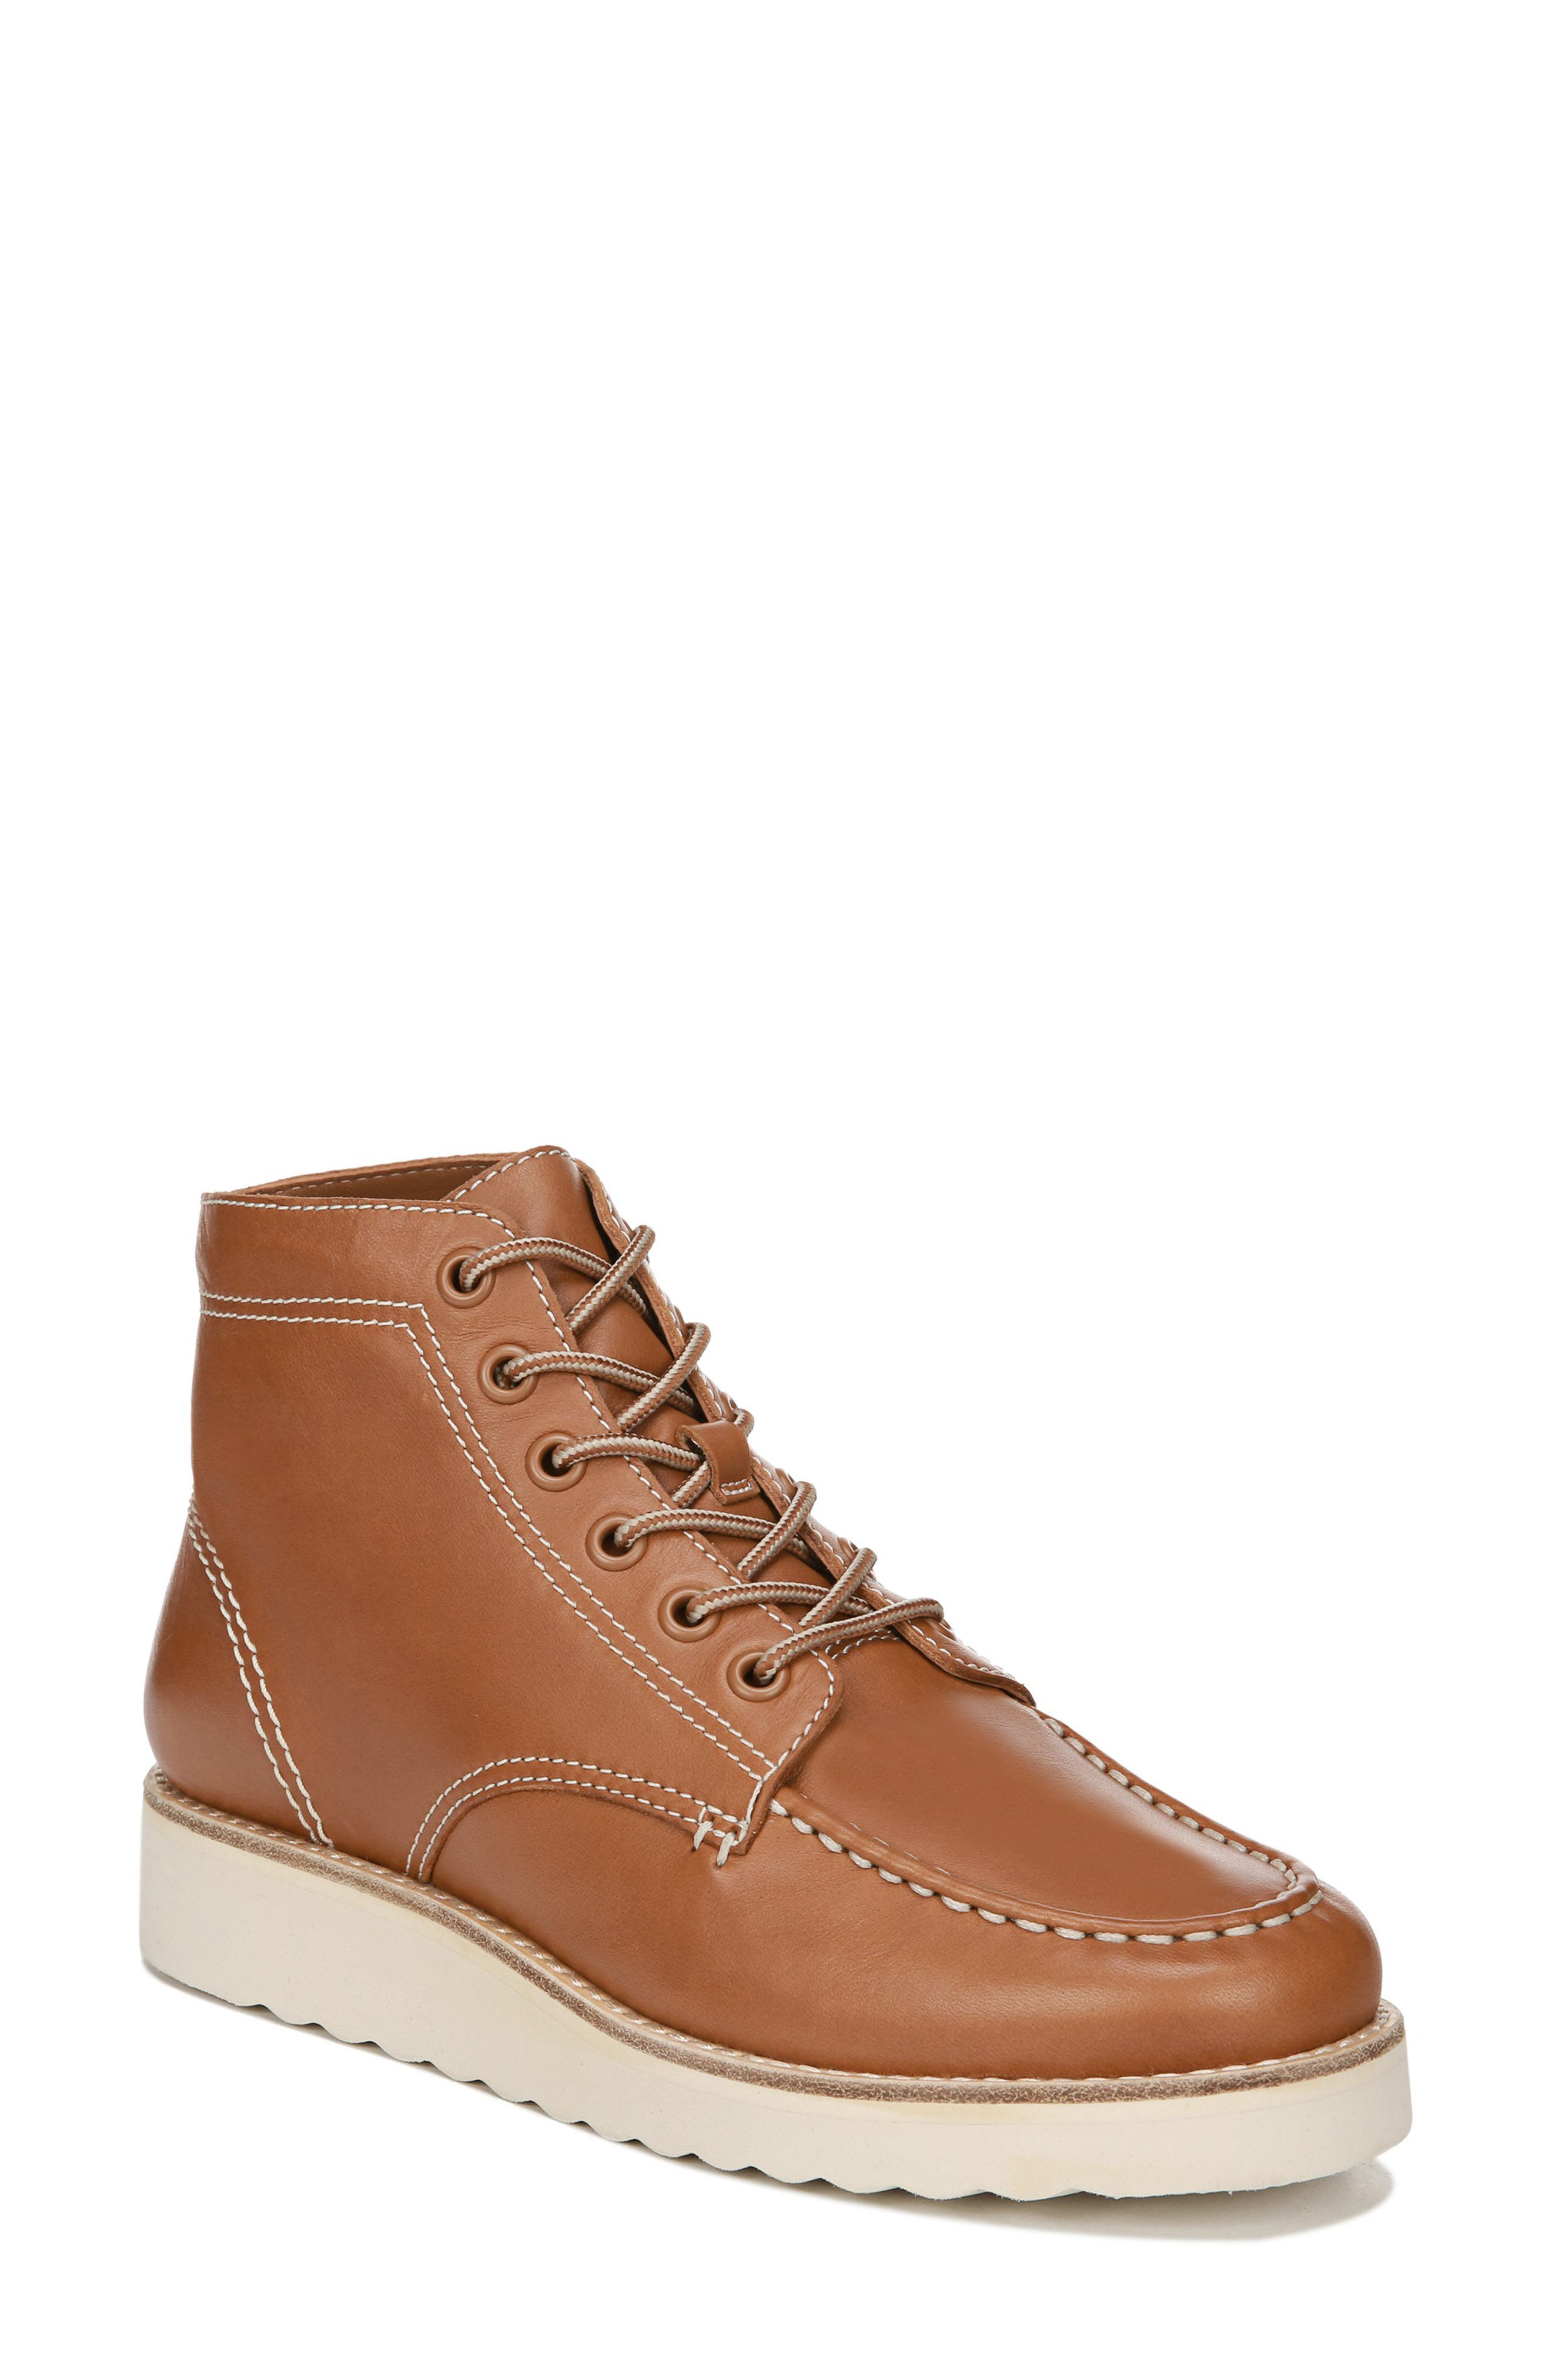 Finley Platform Boot With Genuine Shearling Lining in Chestnut Leather